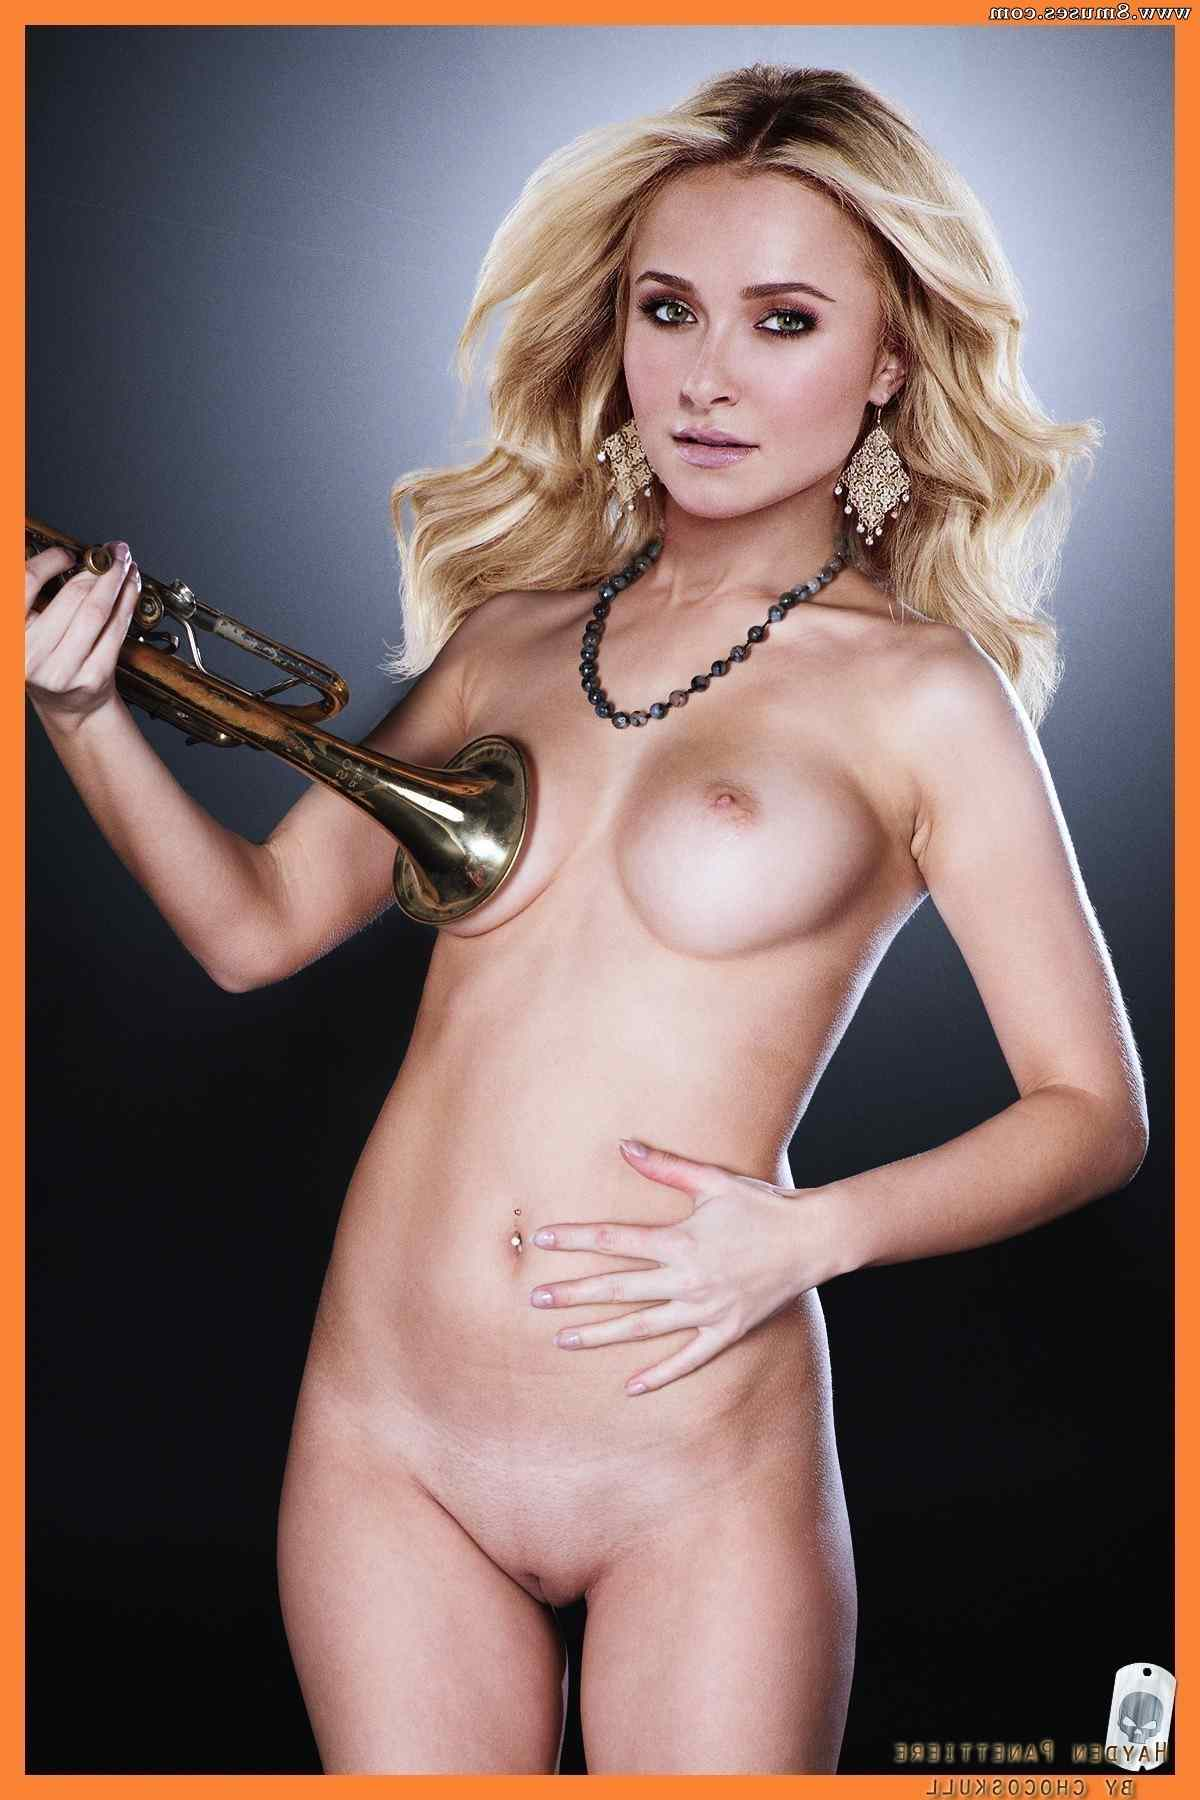 Fake-Celebrities-Sex-Pictures/Hayden-Panettiere Hayden_Panettiere__8muses_-_Sex_and_Porn_Comics_47.jpg